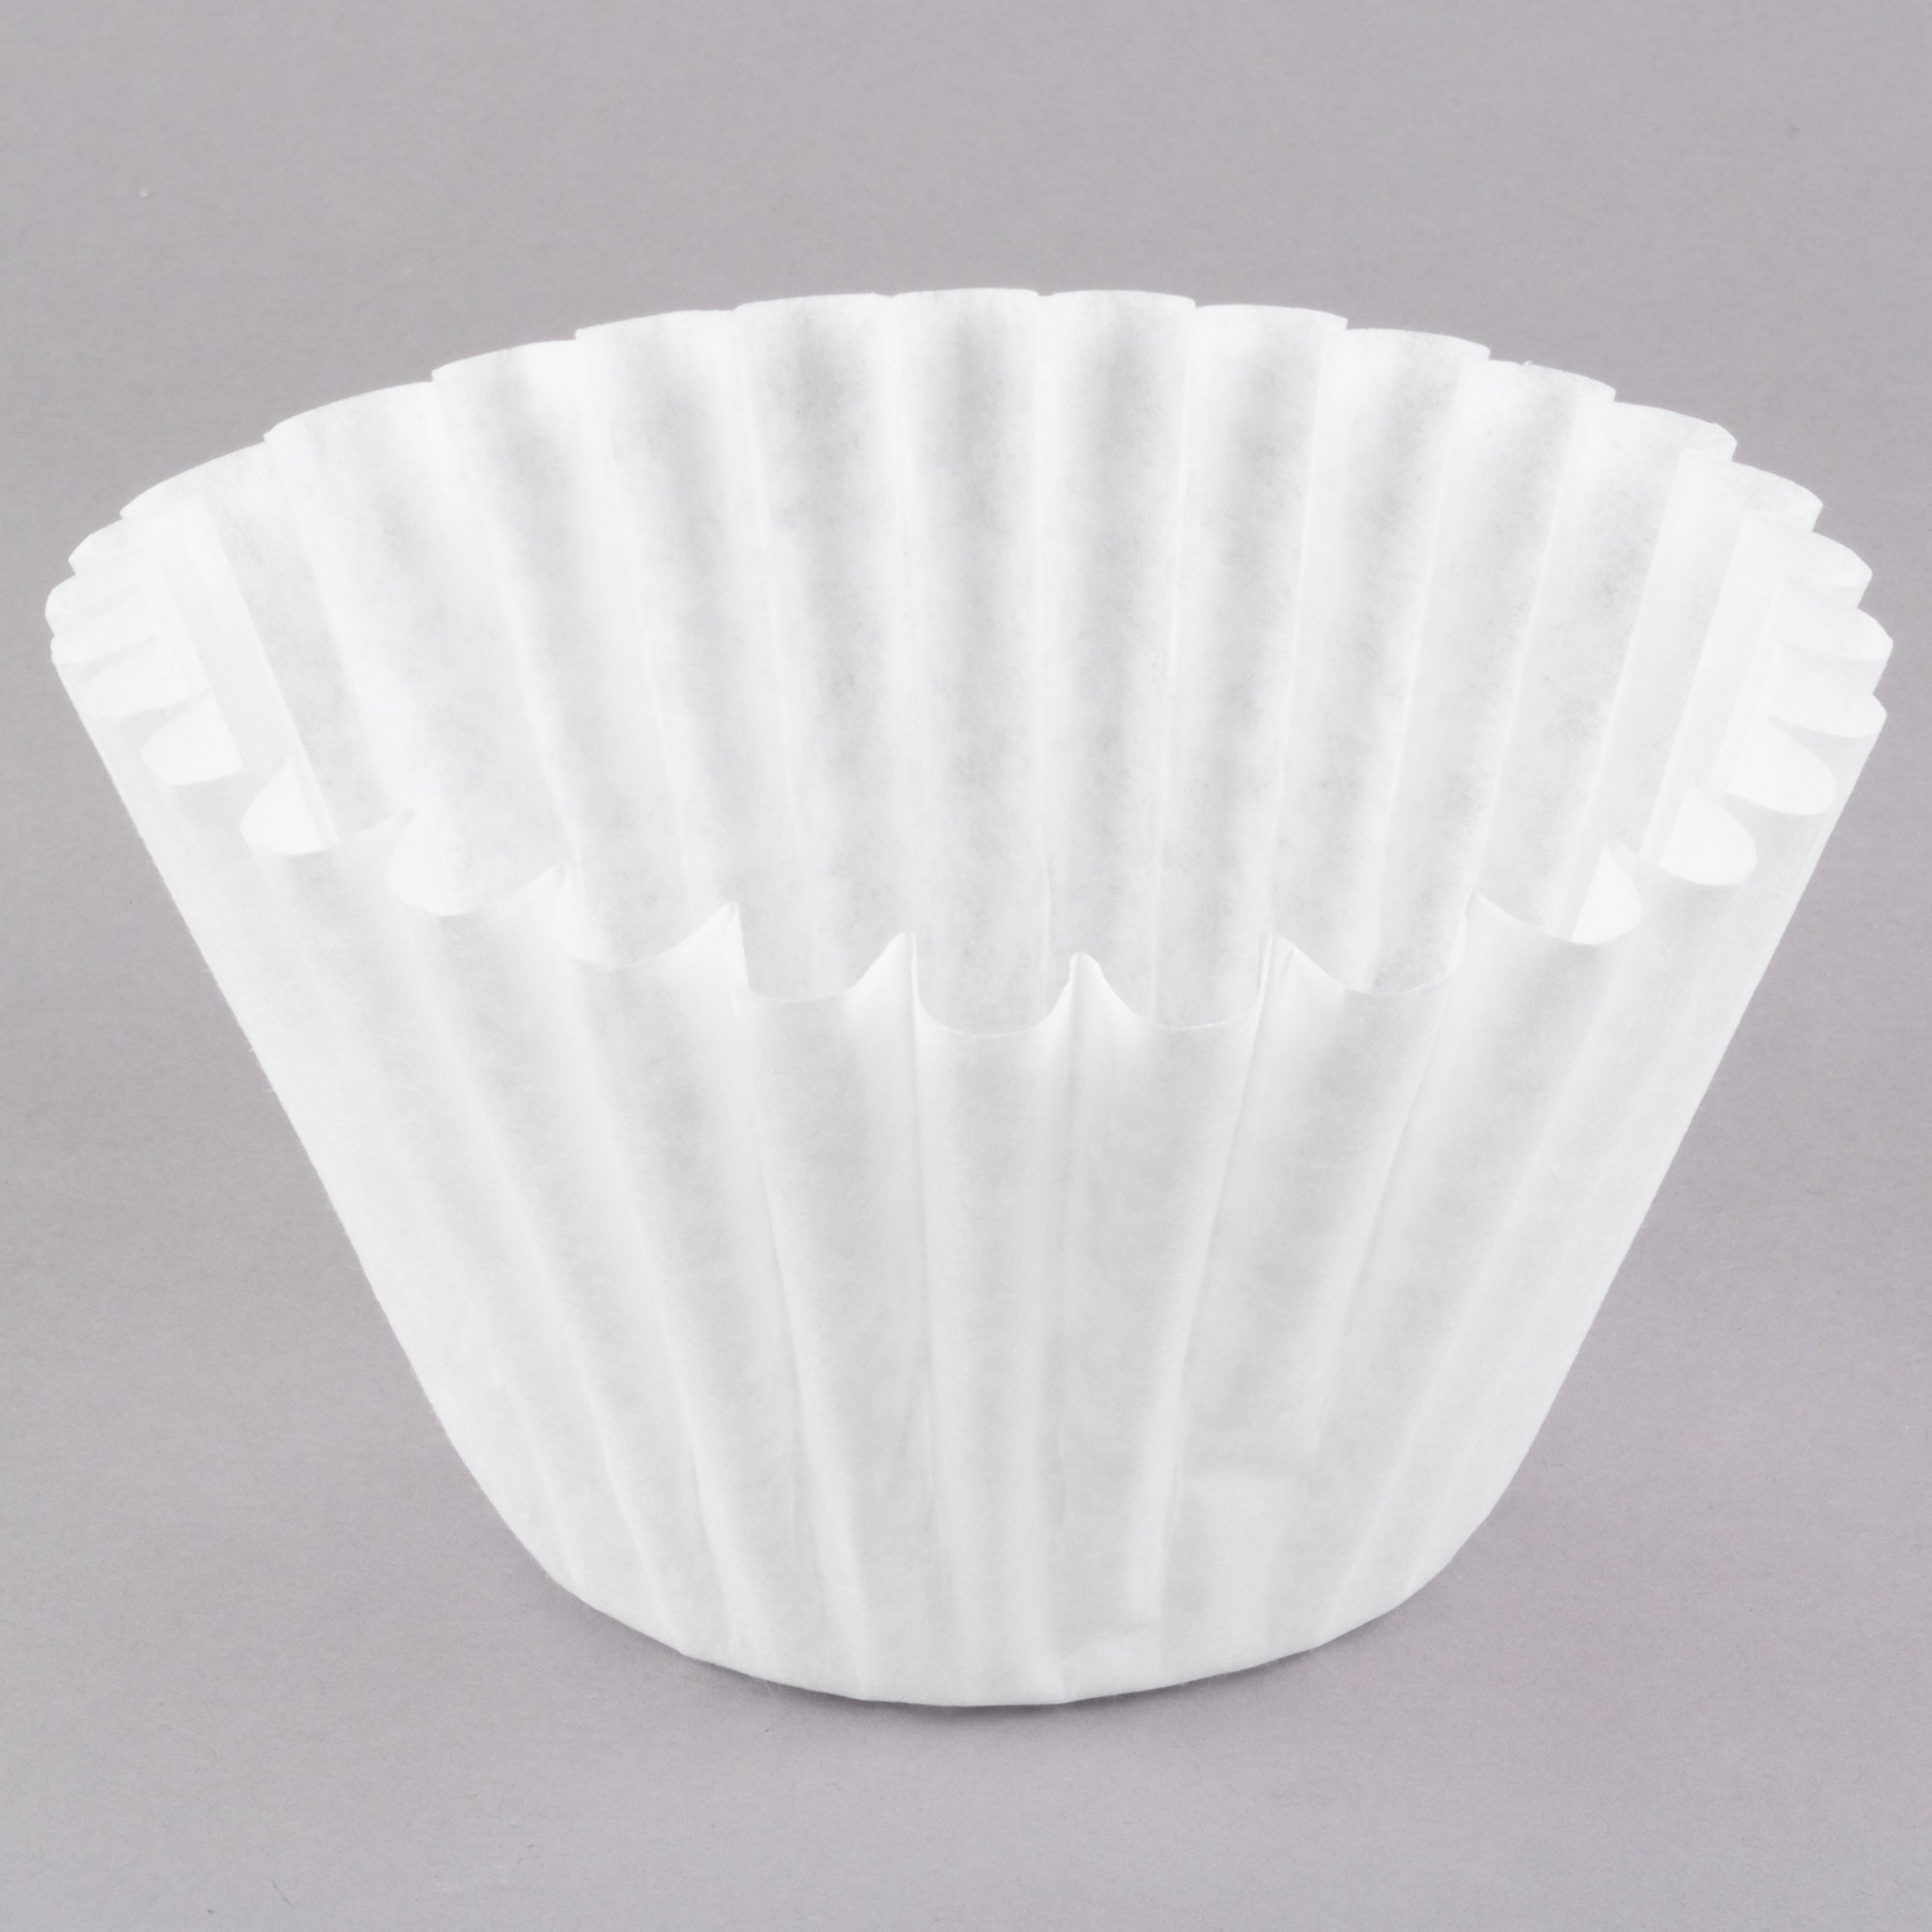 Grindmaster 514 (F514U) 14'' x 5'' Coffee Filter for Satellite Coffee Brewers and Iced Tea Brewers - 500/Case